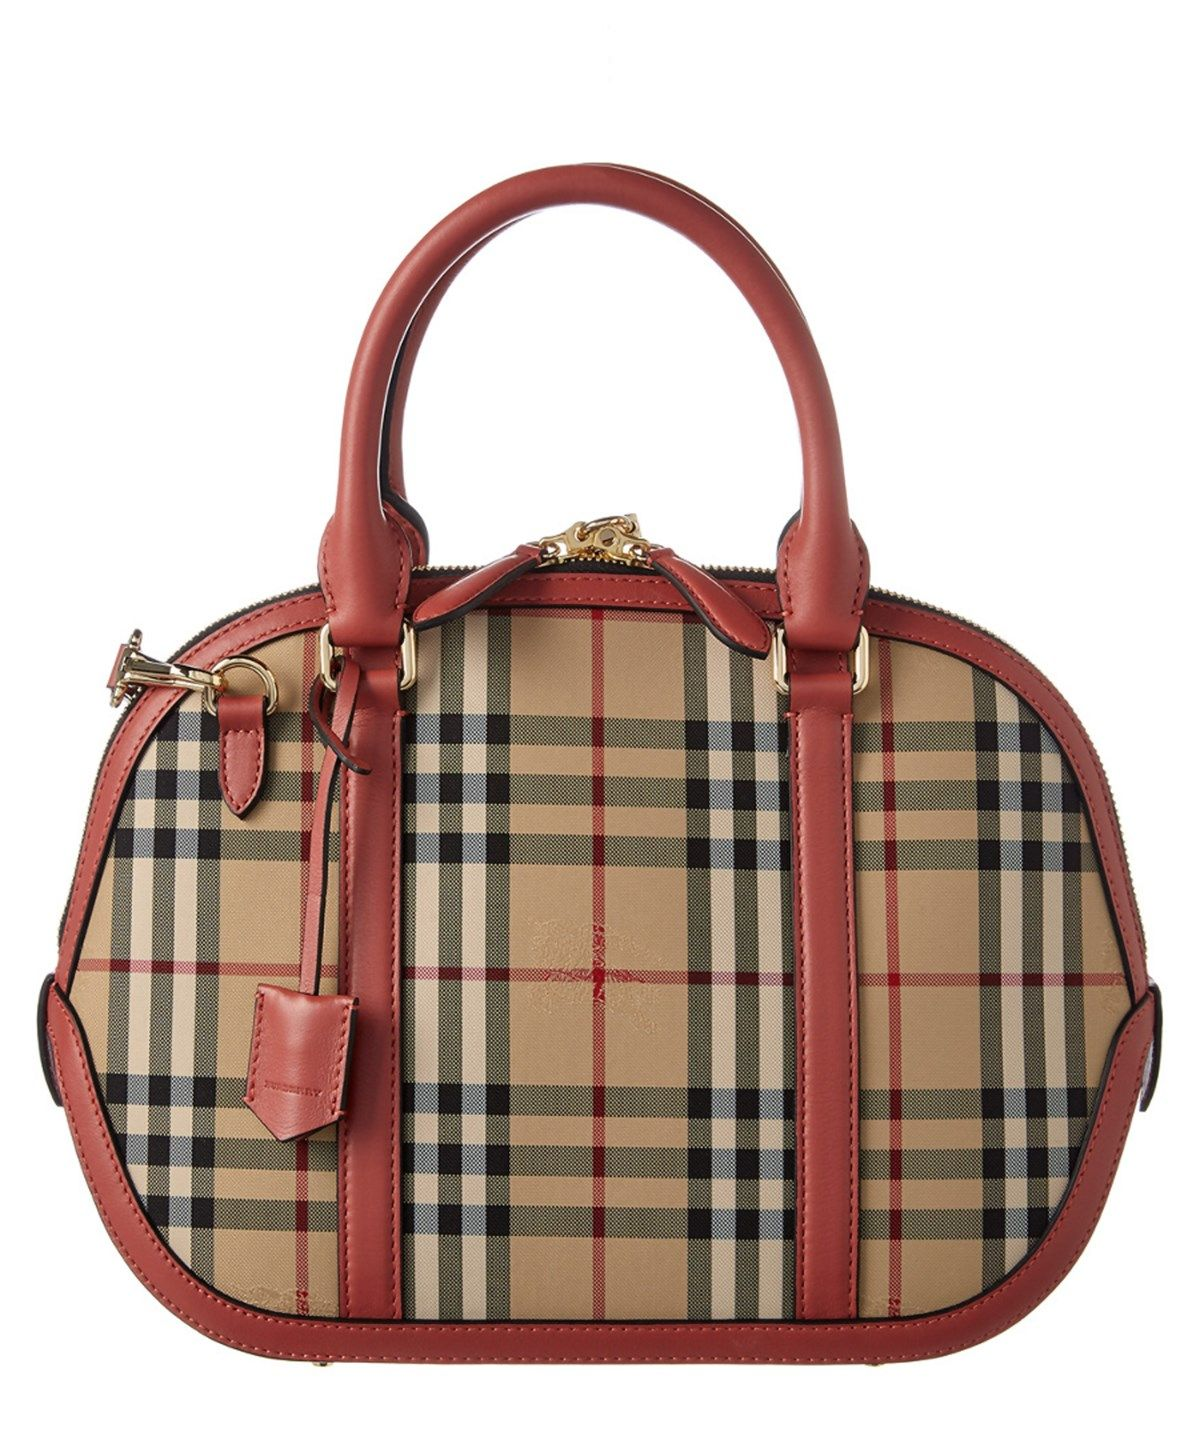 e7da50c879e3 BURBERRY Burberry Orchard Small Horseferry Check  Amp  Leather Bowler .   burberry  bags  shoulder bags  hand bags  canvas  leather  lining